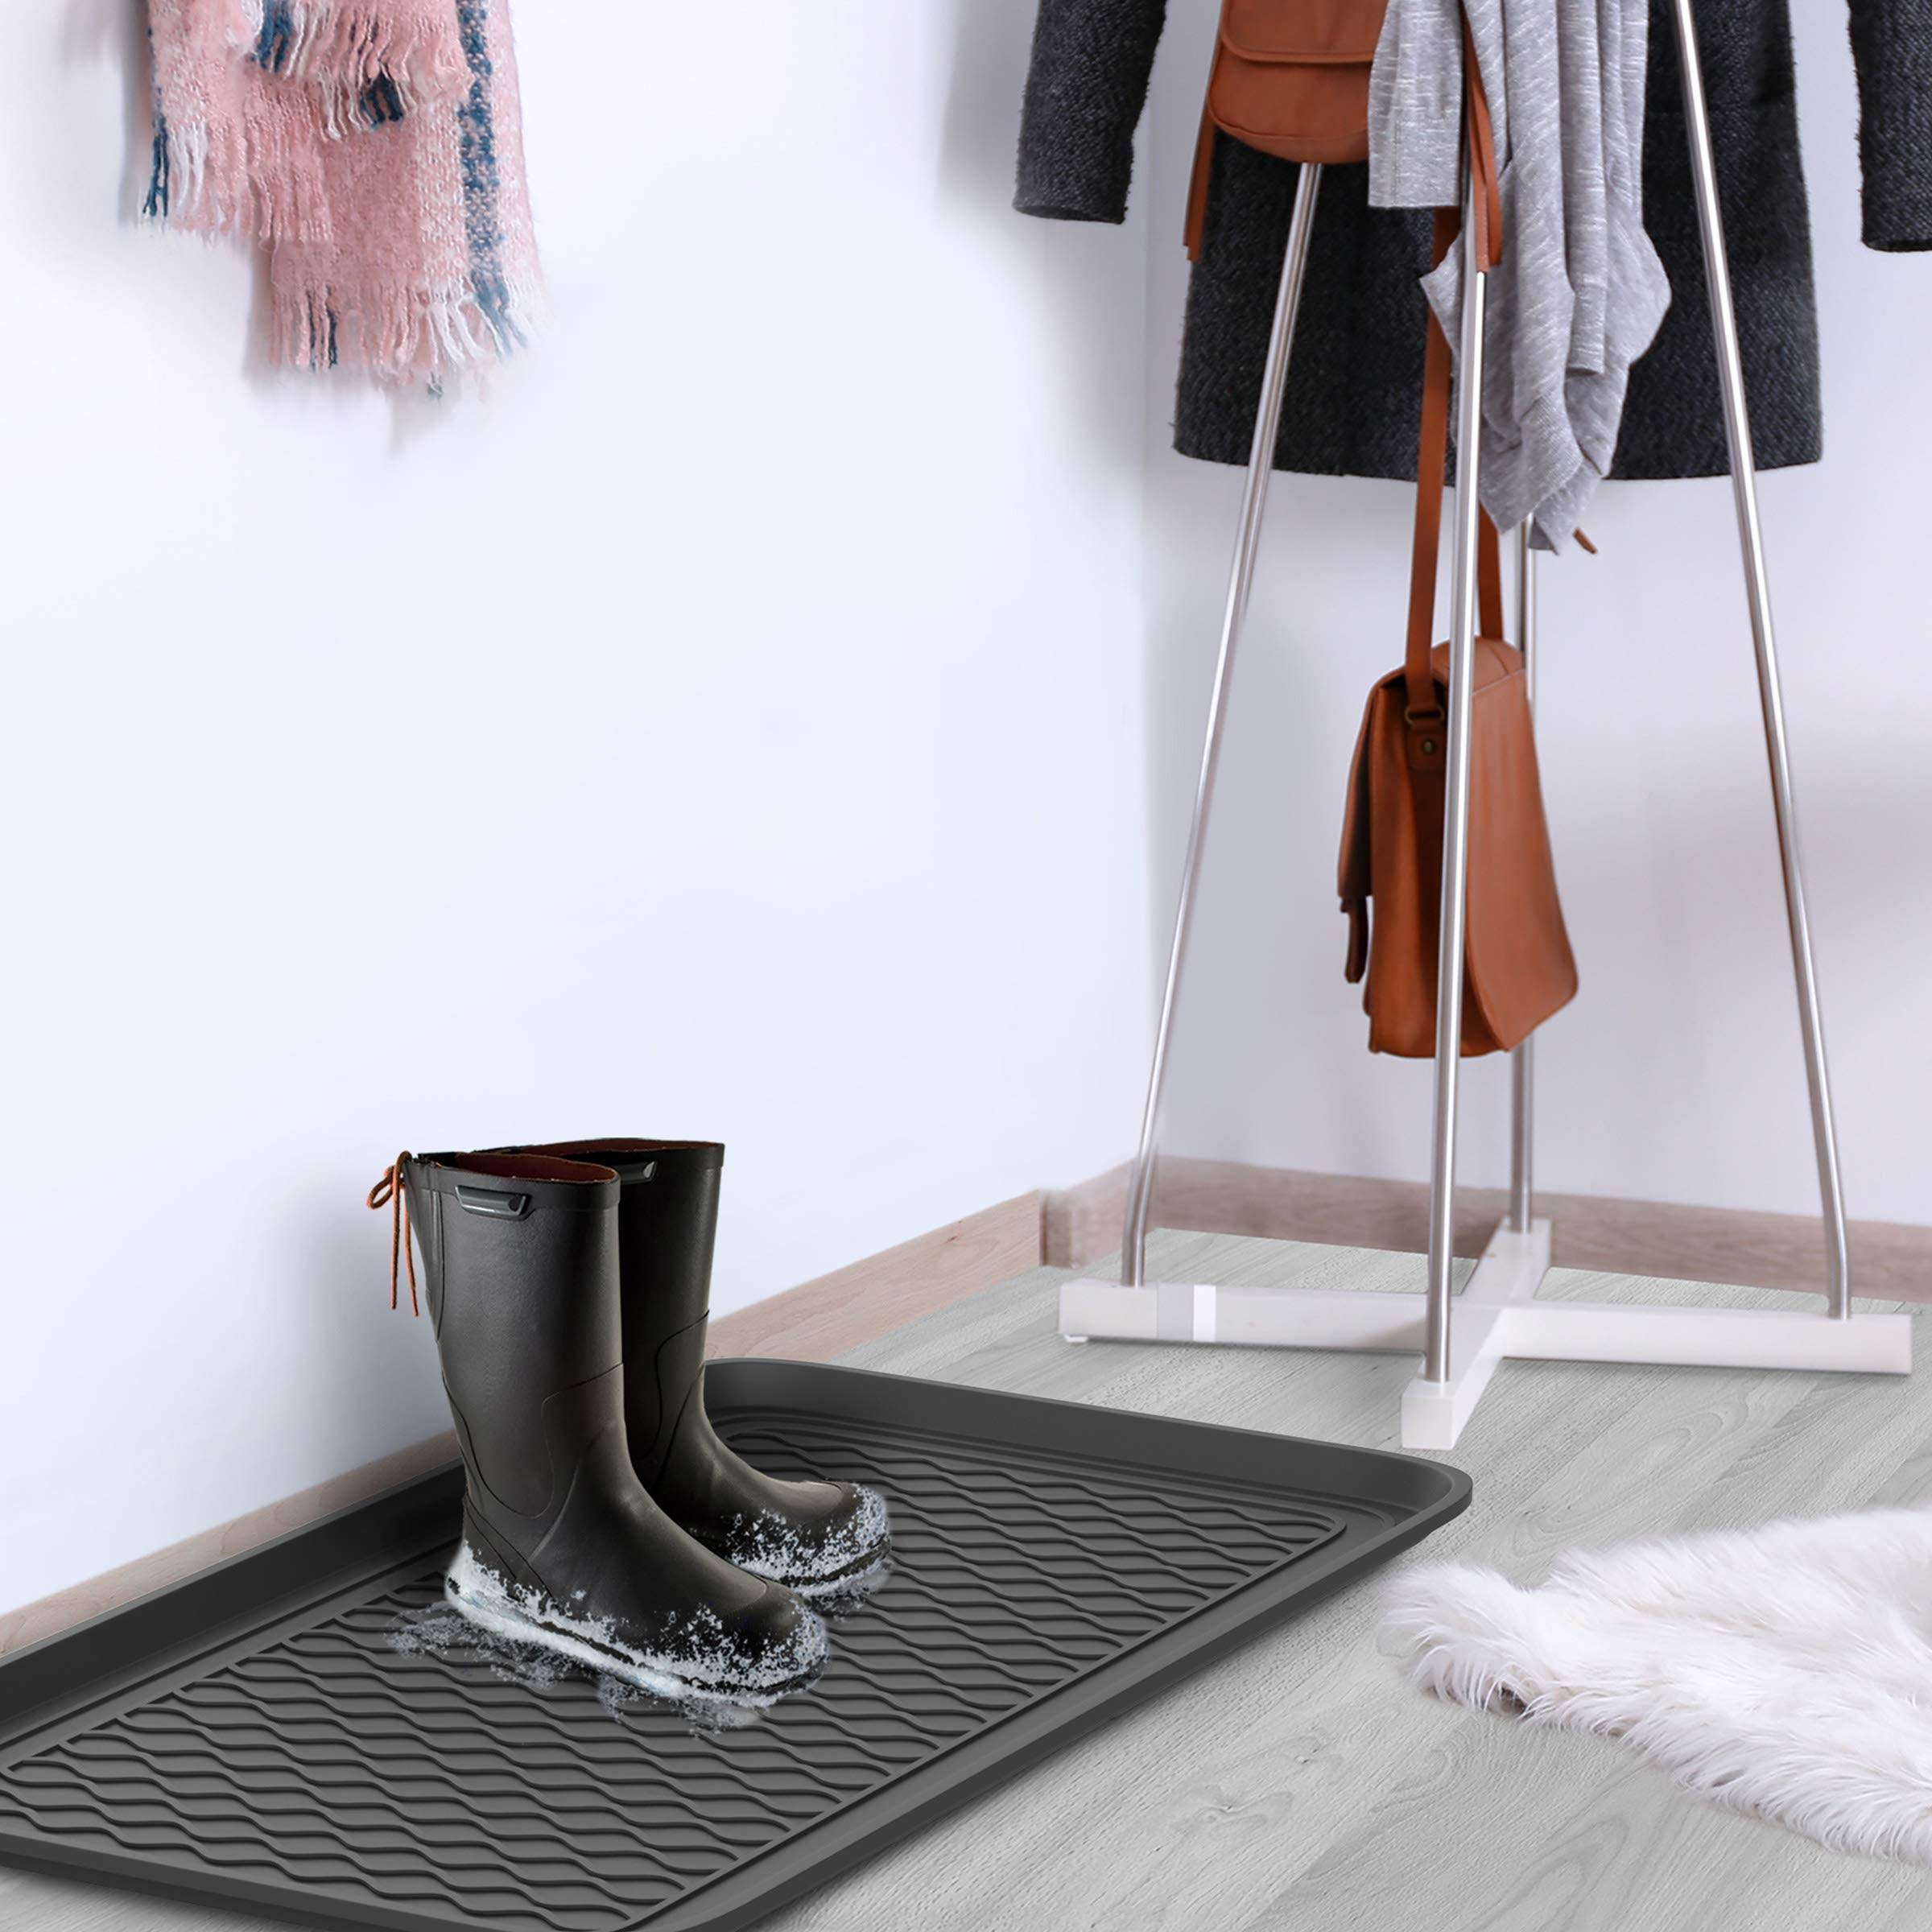 Stalwart 75-ST6102 Weather Boot Tray-Large Water Resistant Plastic Utility Shoe Mat for Indoor and Outdoor Use in All Seasons (Set of Two, Black) by Stalwart (Image #4)